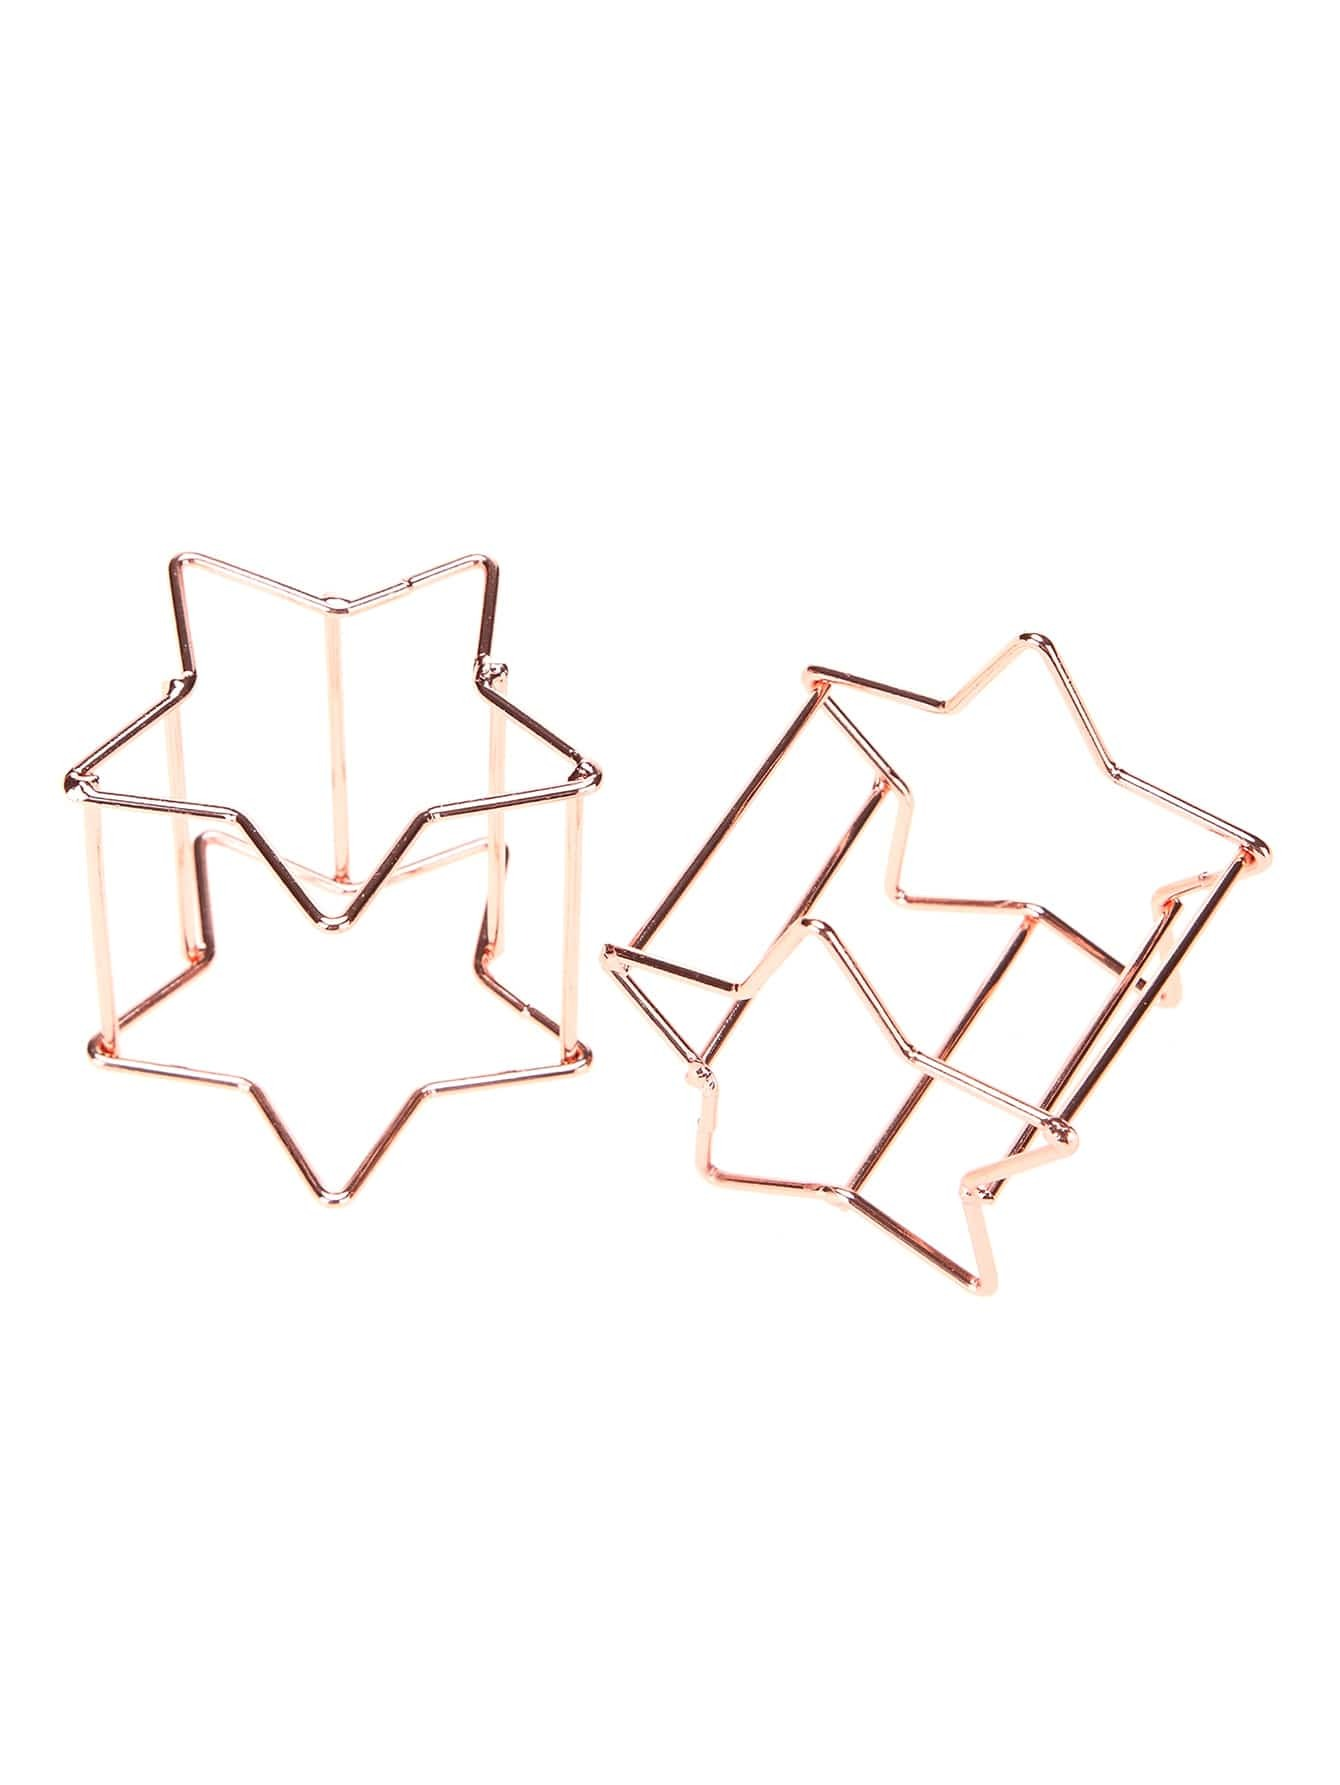 Star Shaped Makeup Puff Holder 2pcs puff drying holder 2pcs